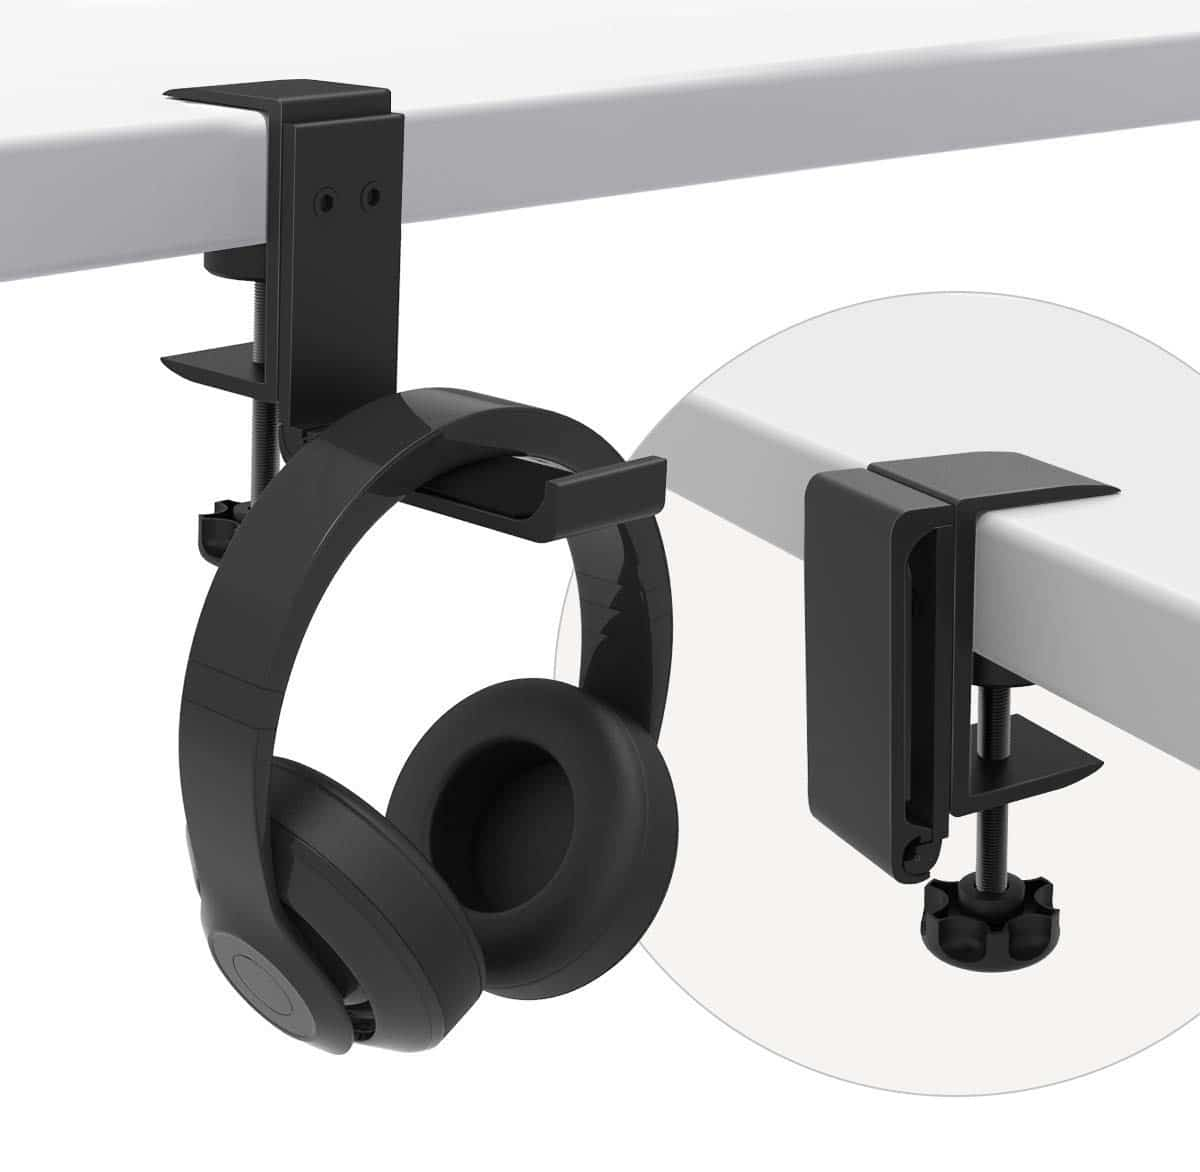 10.oldable Headphone Stand Hanger Holder Bracket Aluminum Headset Soundbar Stand Clamp Hook Under Desk Space Save Mount Fold